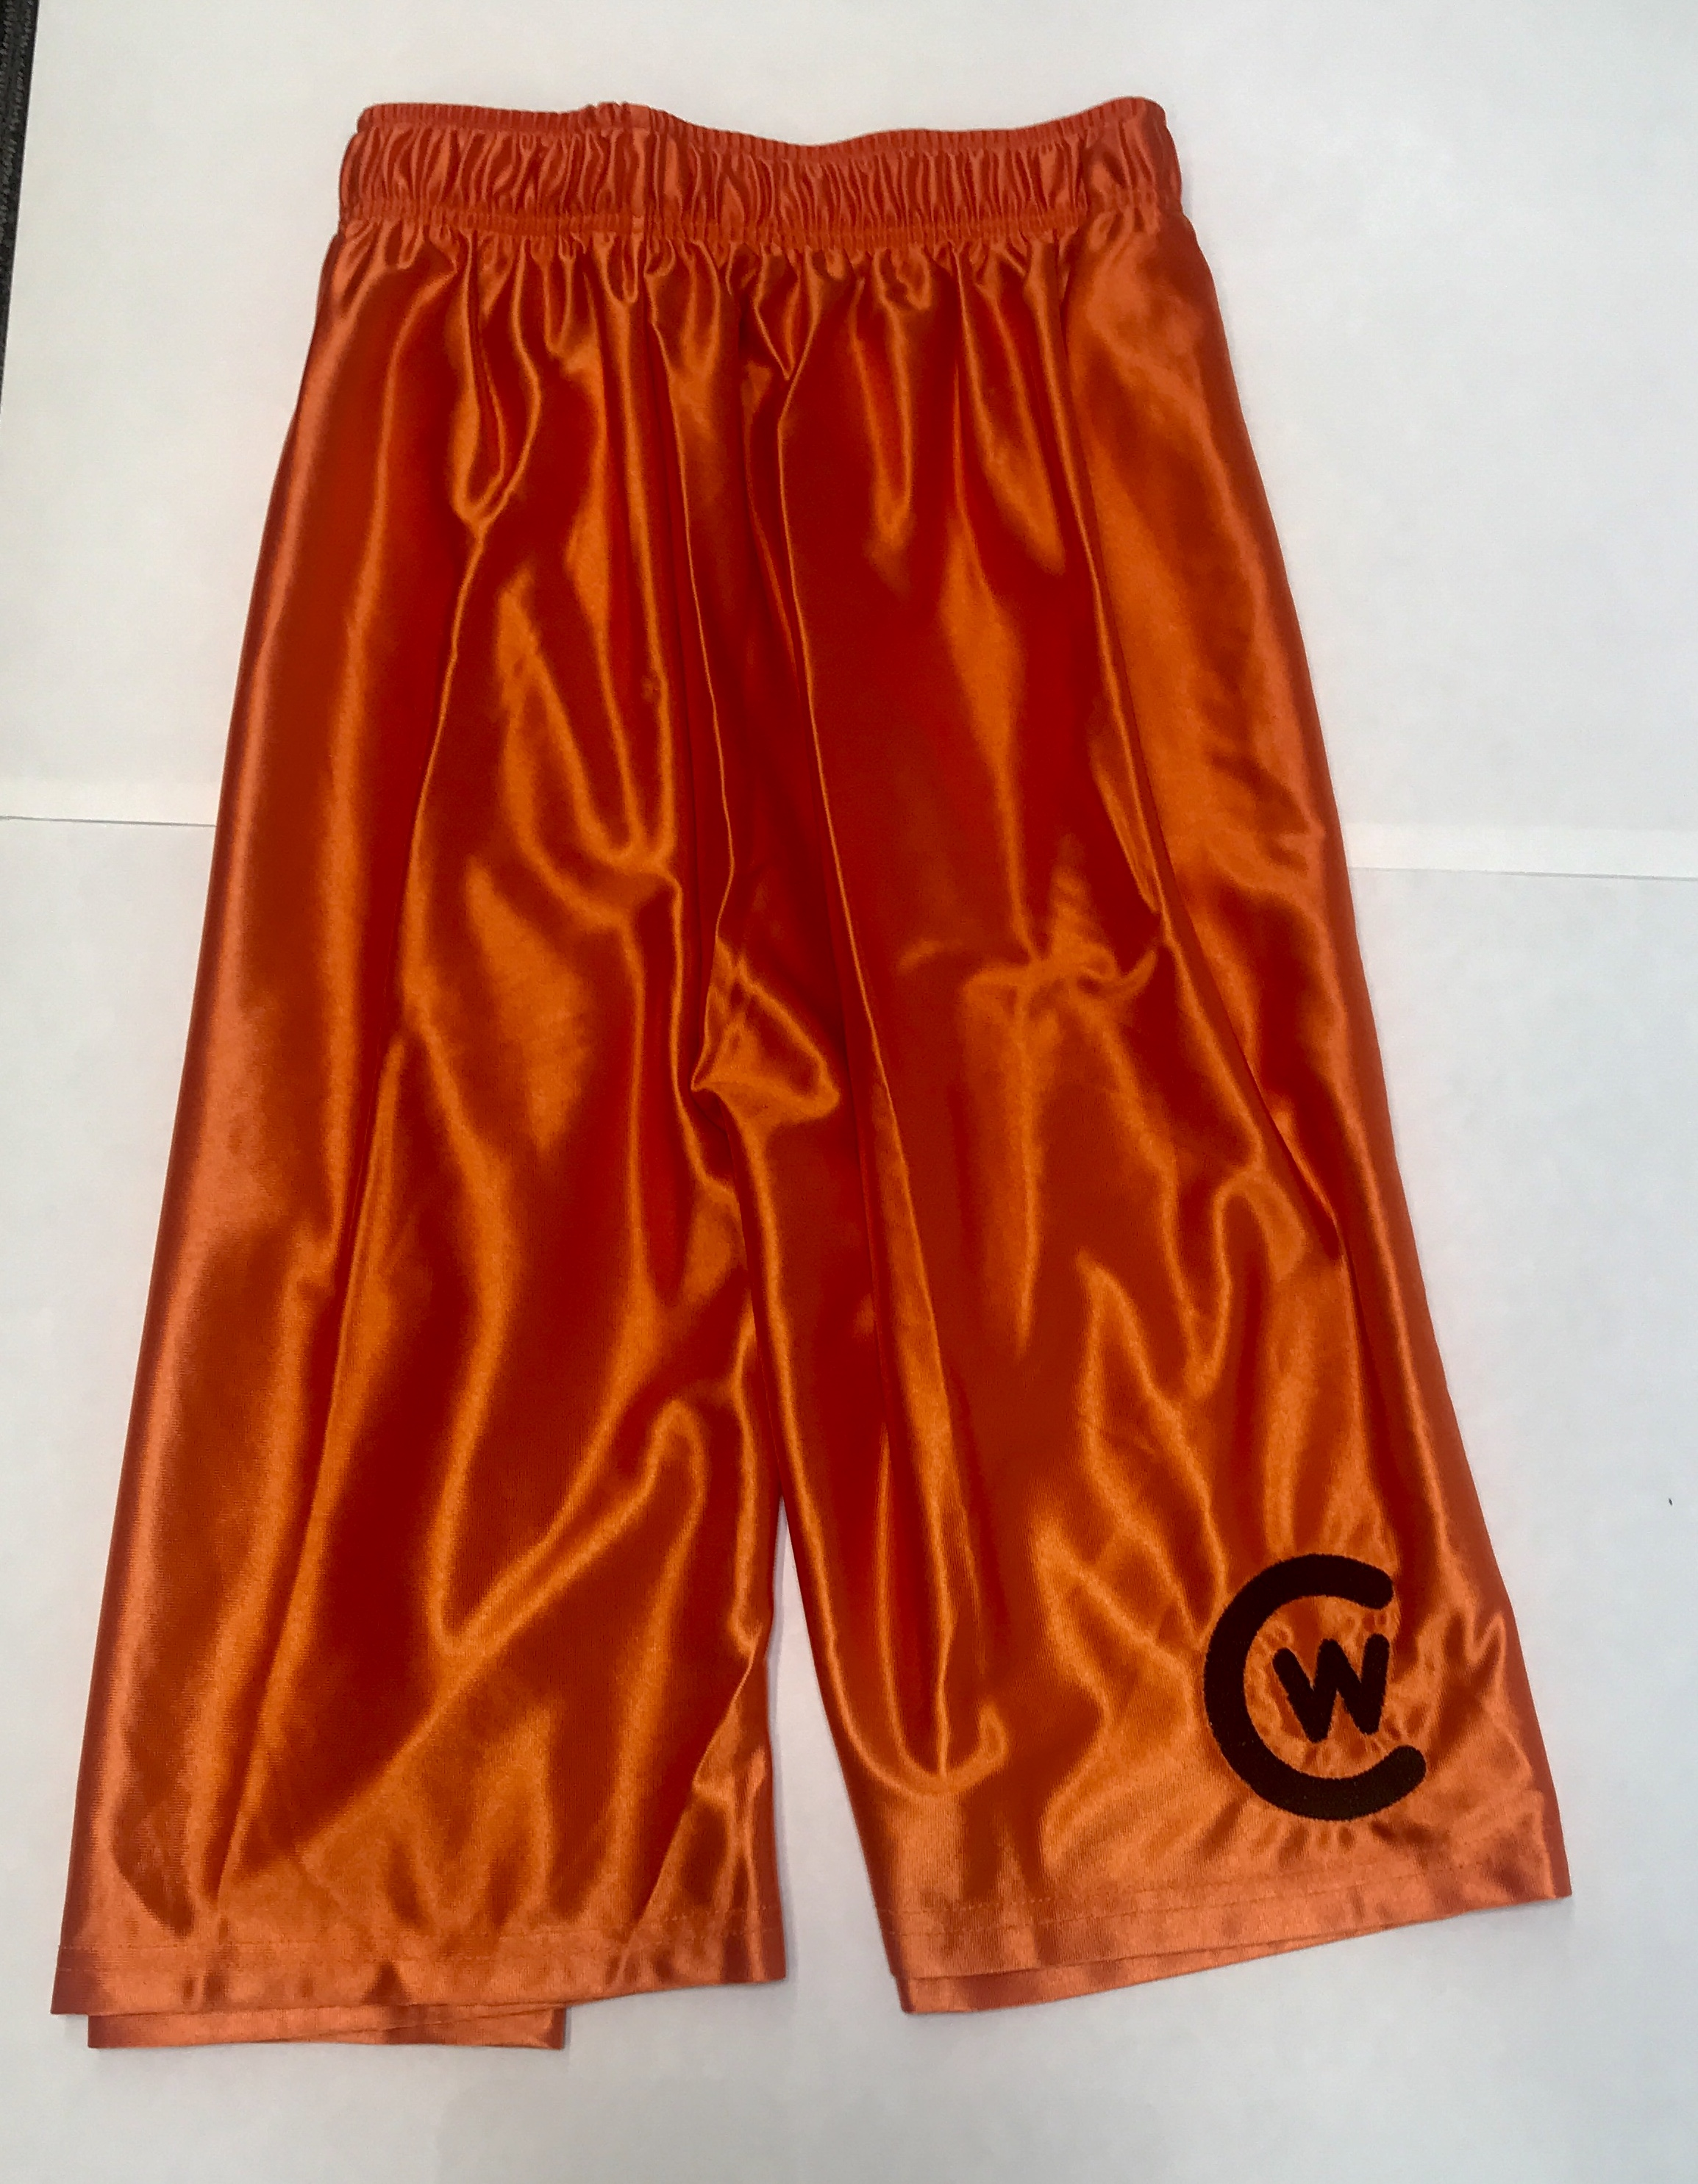 Orange CW Shorts